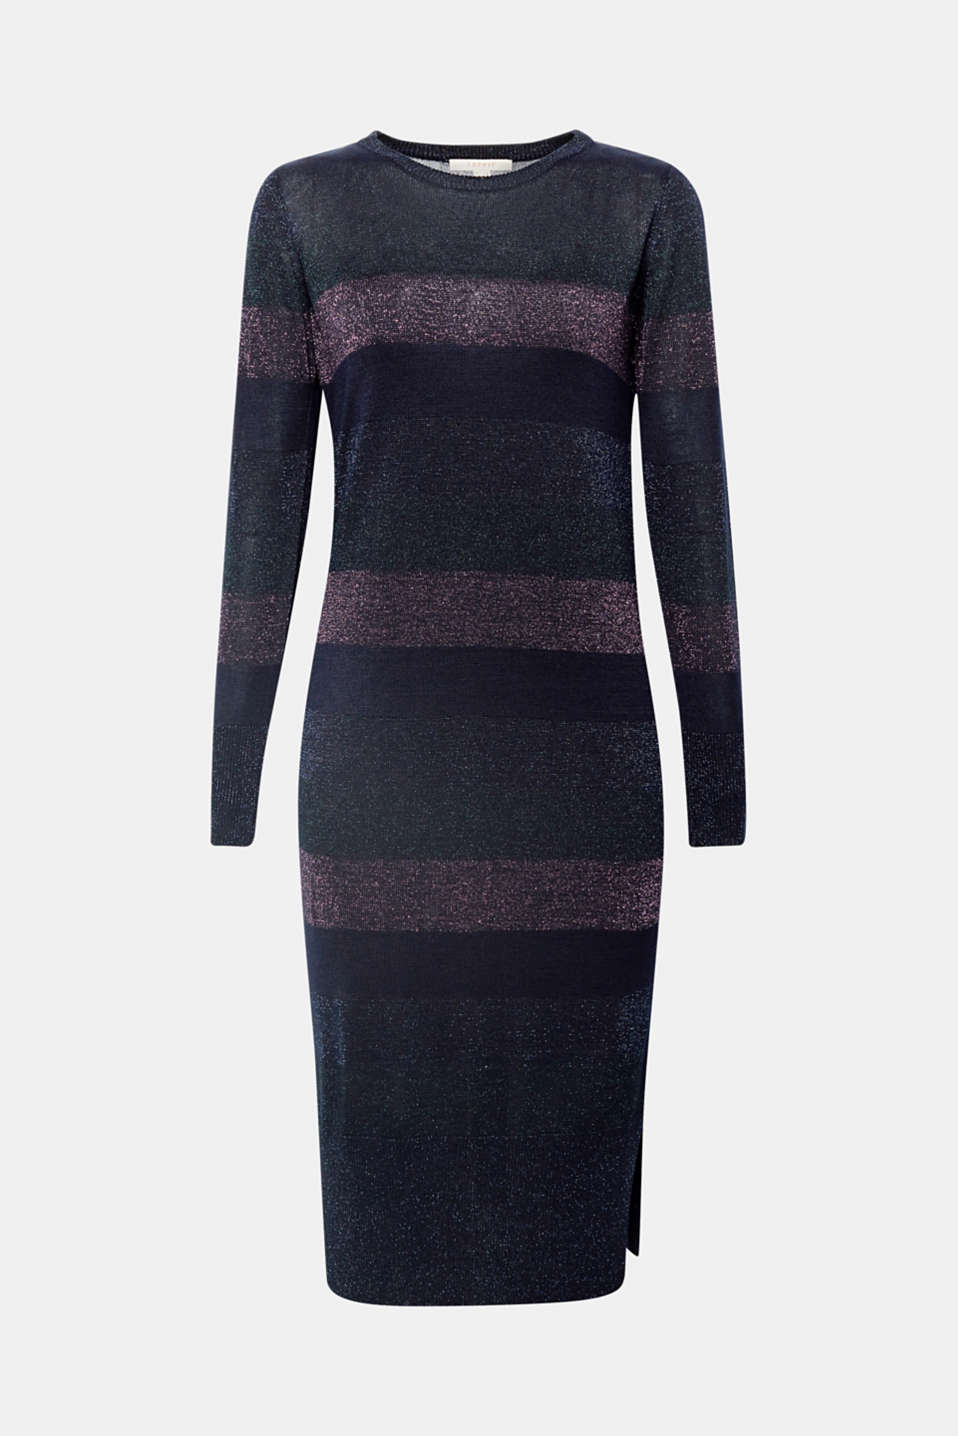 Glittering block stripes give this lightweight knitted dress its elegant look A jersey dress with spaghetti straps makes this piece opaque